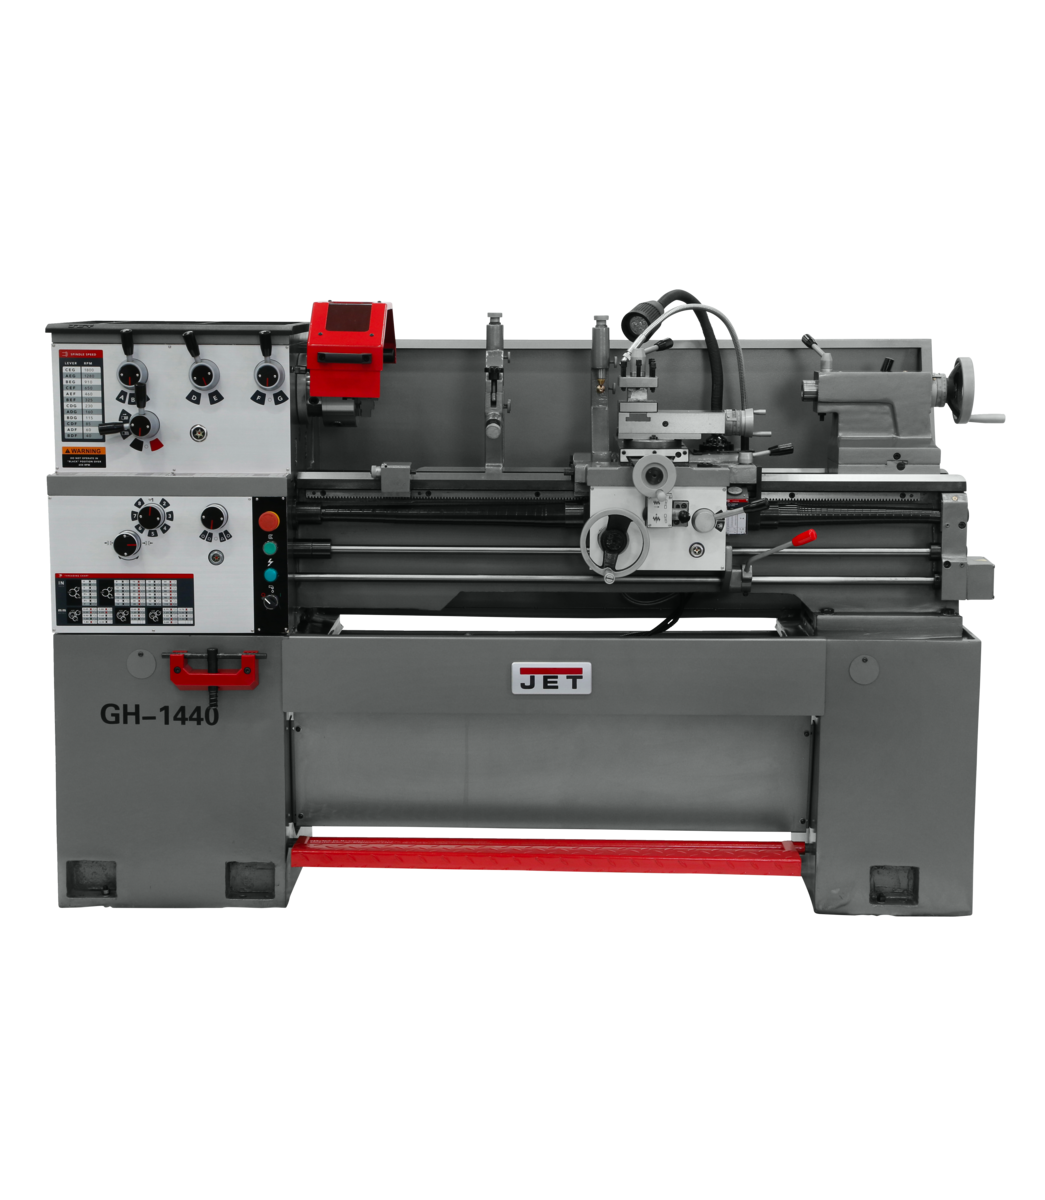 GH-1440-3 with 203 DRO